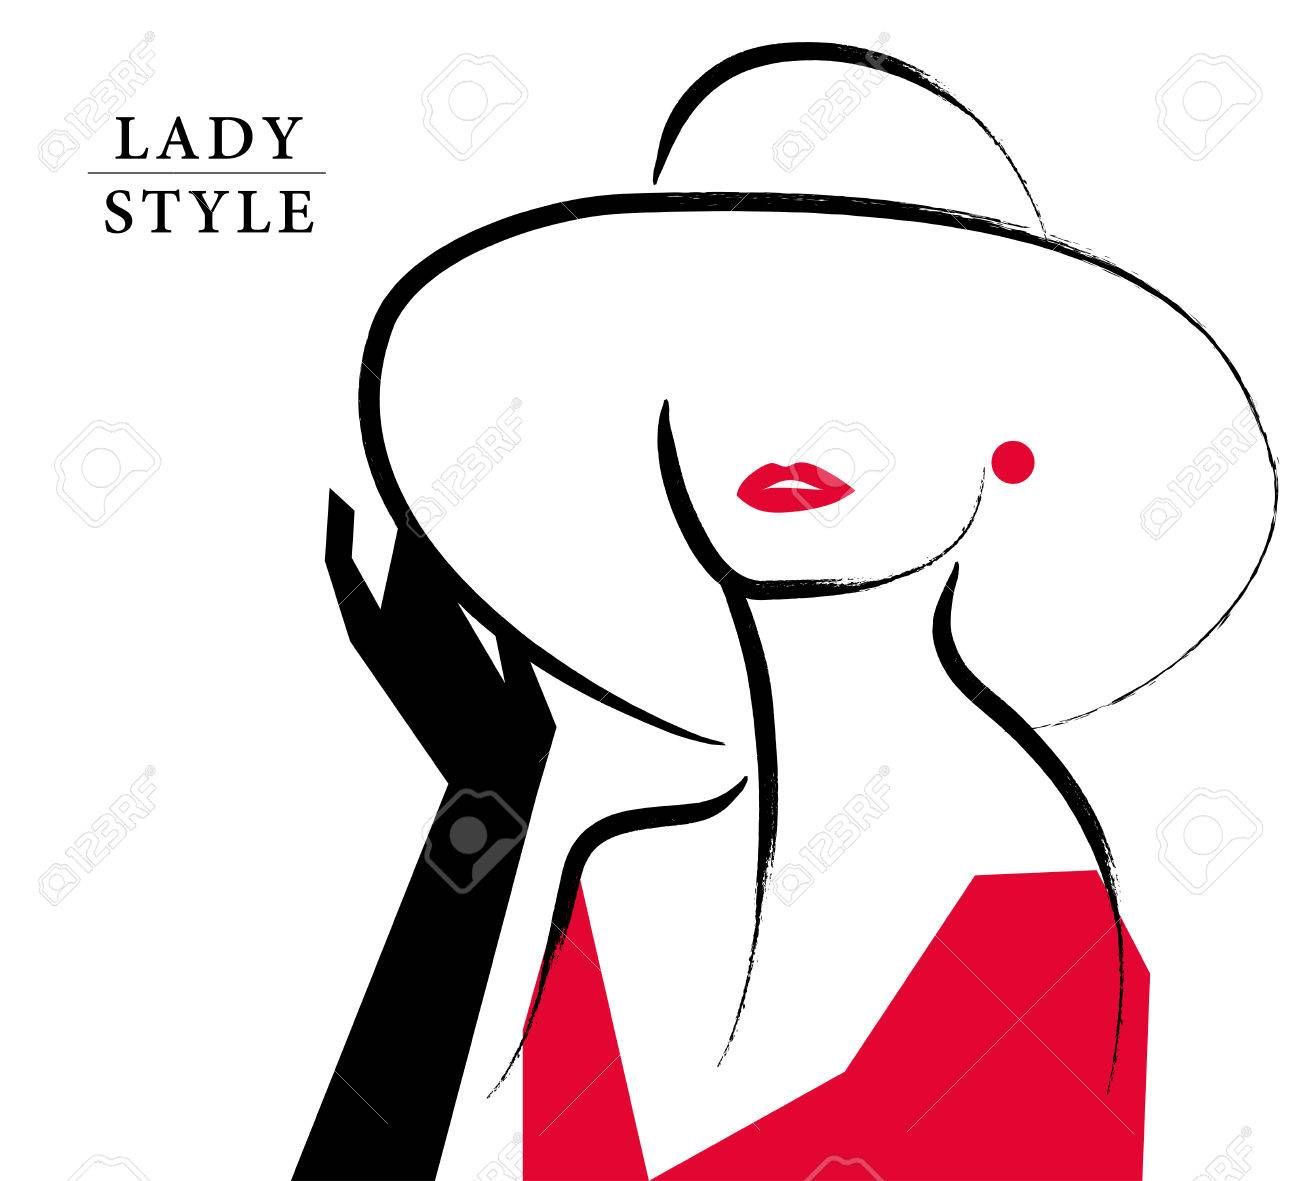 Vector Artistic Hand Drawn Stylish Young Lady Portrait Isolated On White  Background. Fashion Girl,  Fashion Poster Design